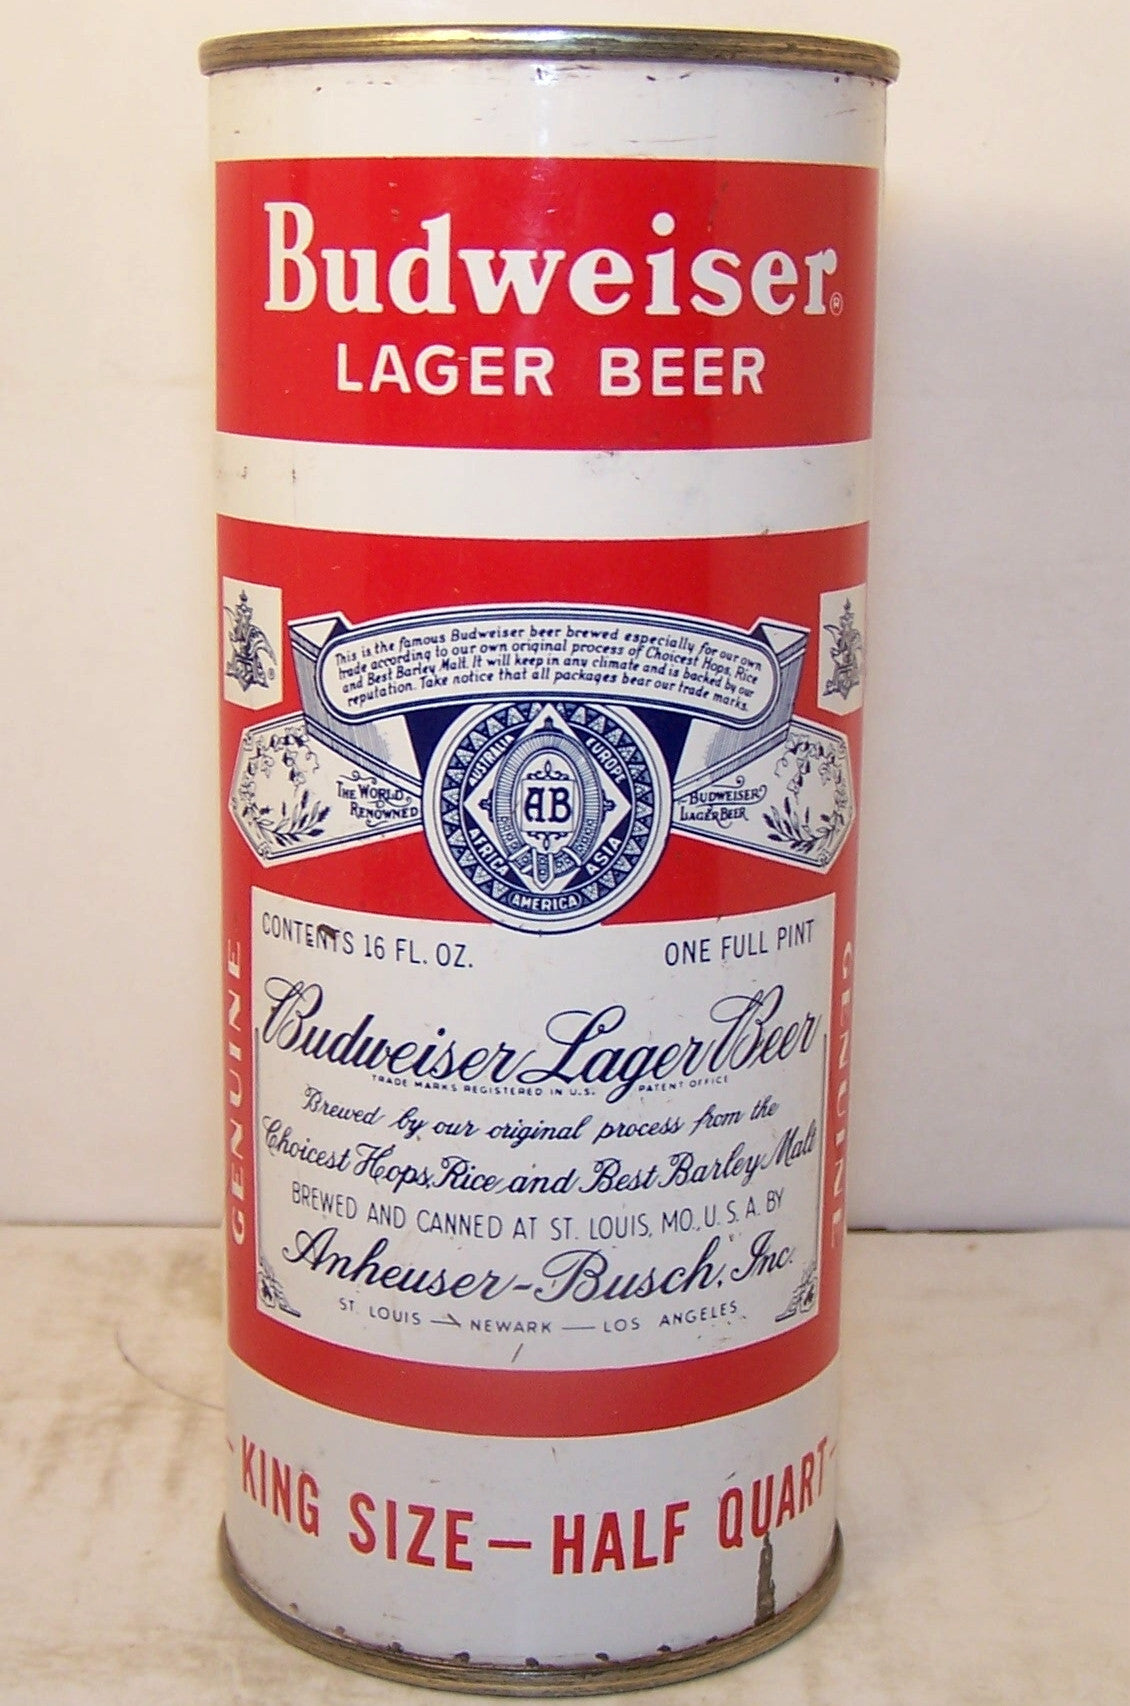 Budweiser Lager Beer, USBC 226-24, Grade 1- Sold on 05/02/17